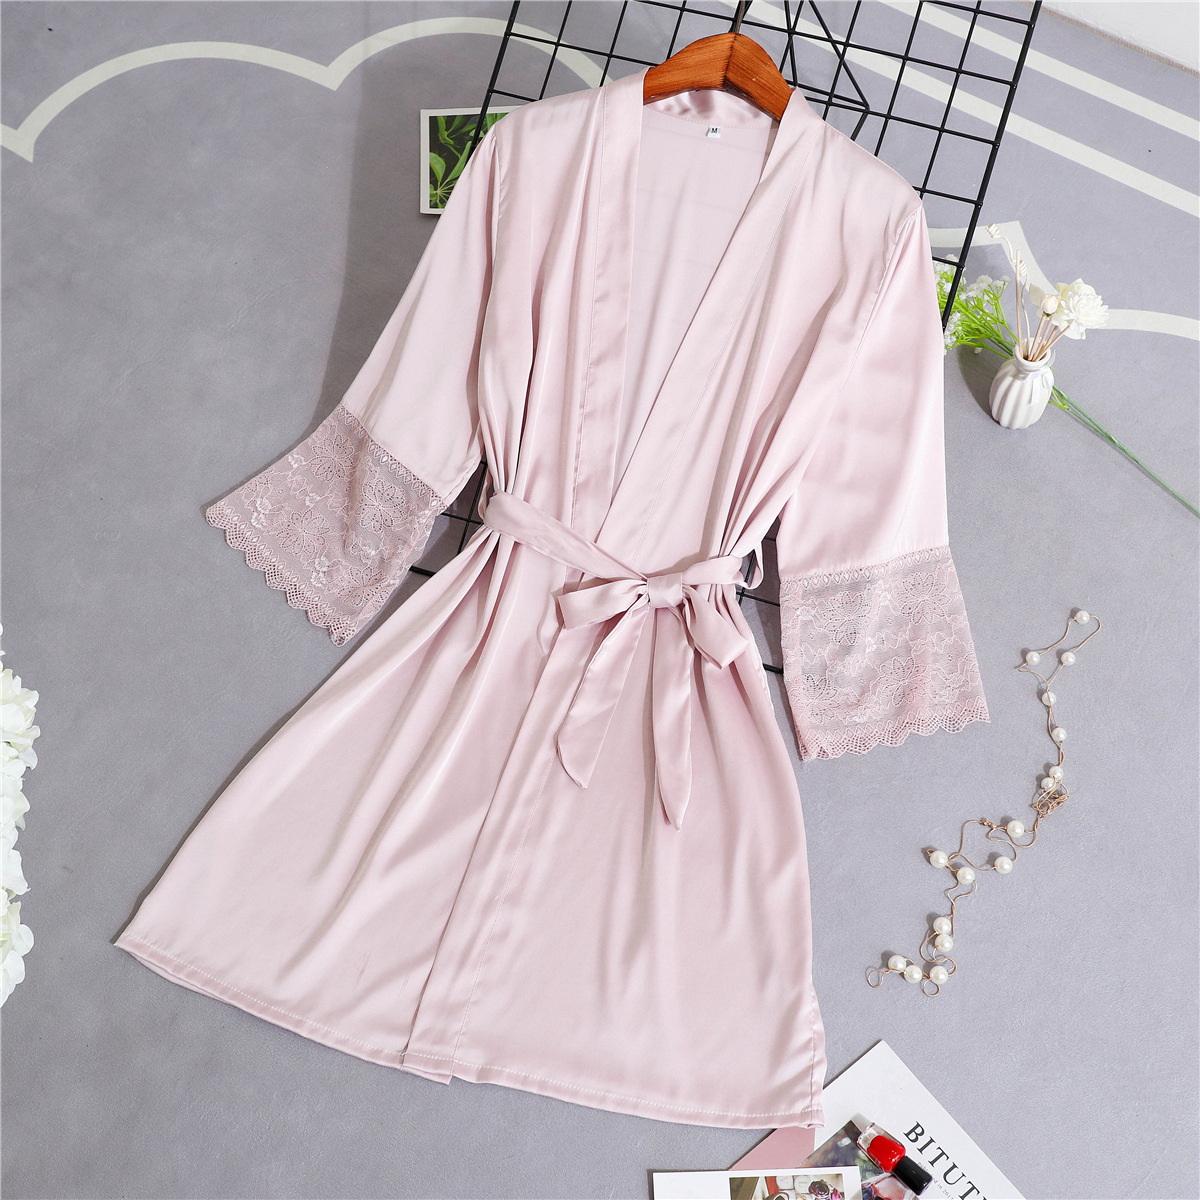 Pink Lady Rayon Wedding Robe Dressing Gown Women Nightgown Sexy Lace Bride Bridesmaid Kimono Kaftan Bathrobe M L XL XXL TS003